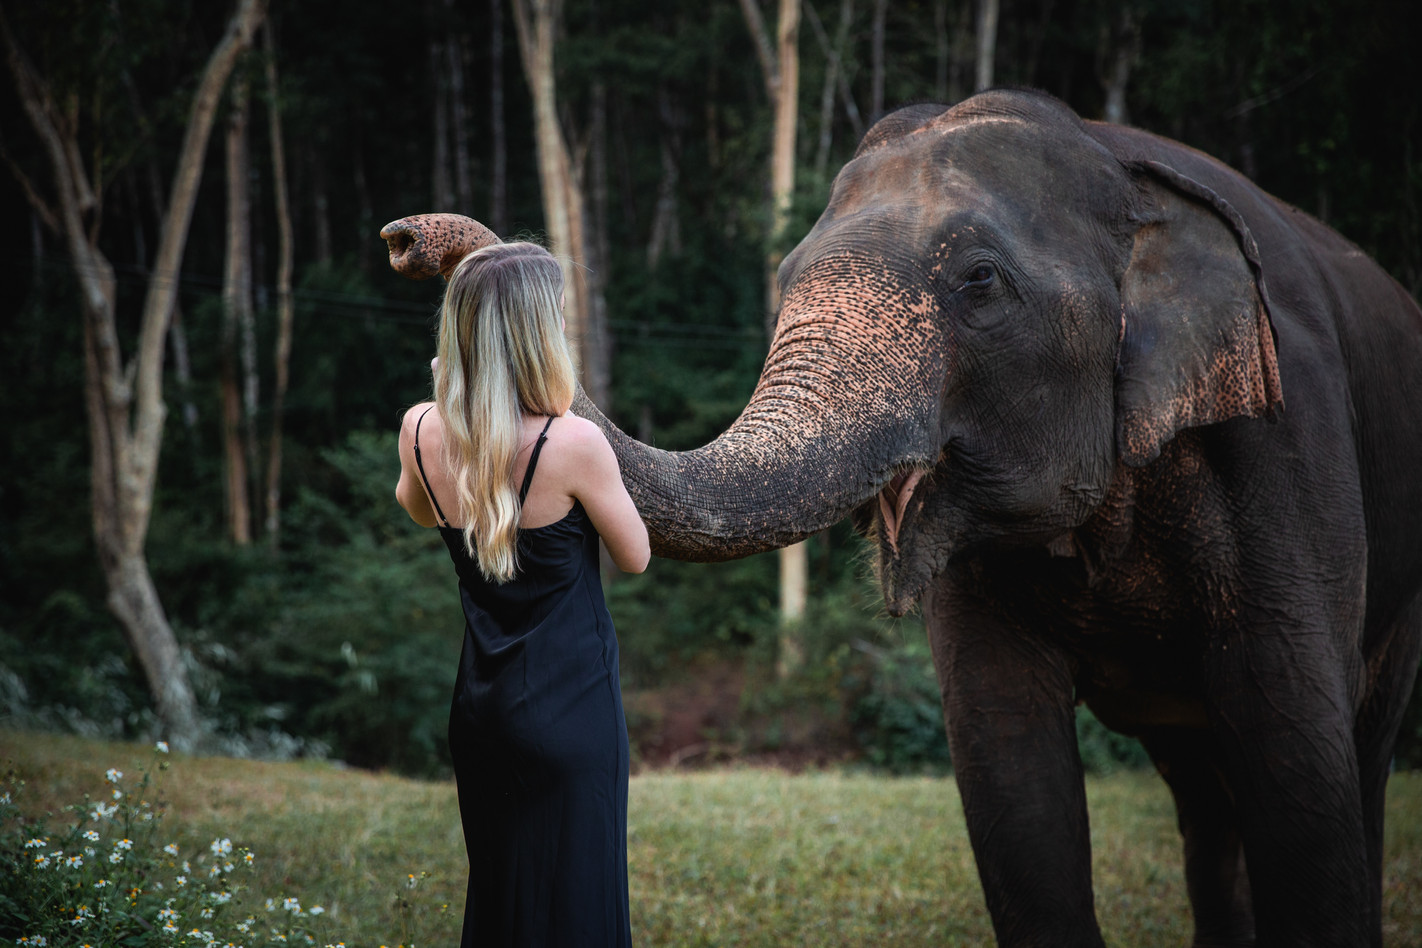 Girl plays with elephant